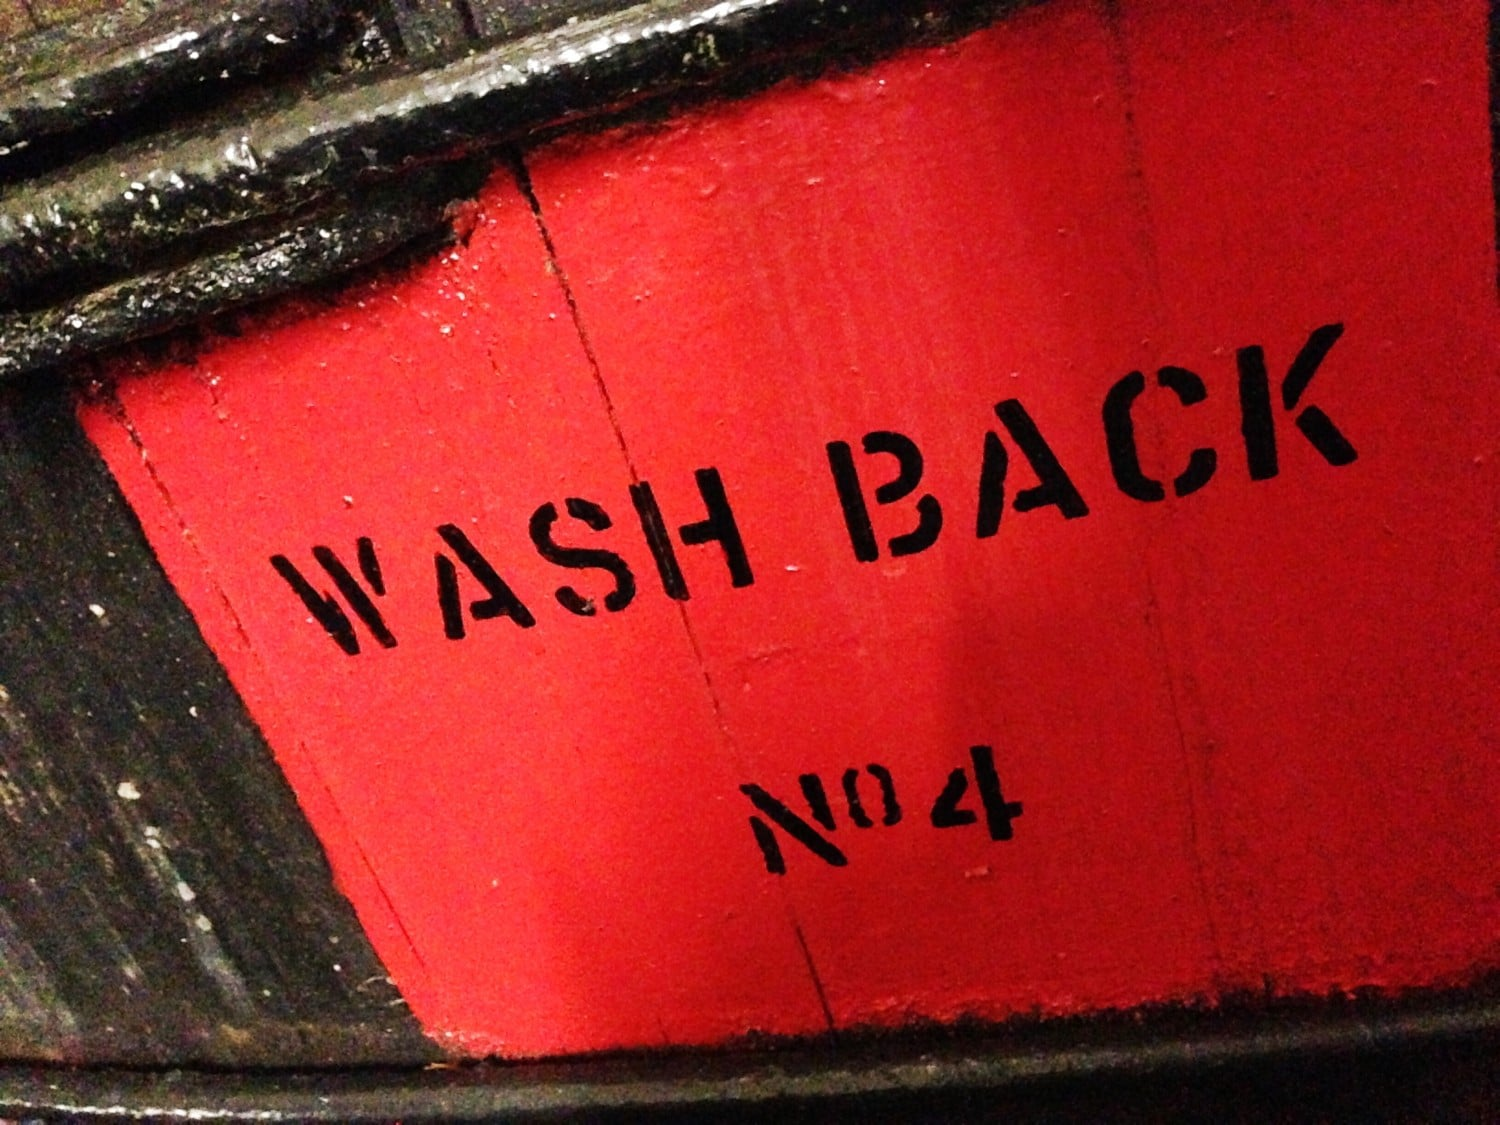 Wash Back - Kilchoman Distillery